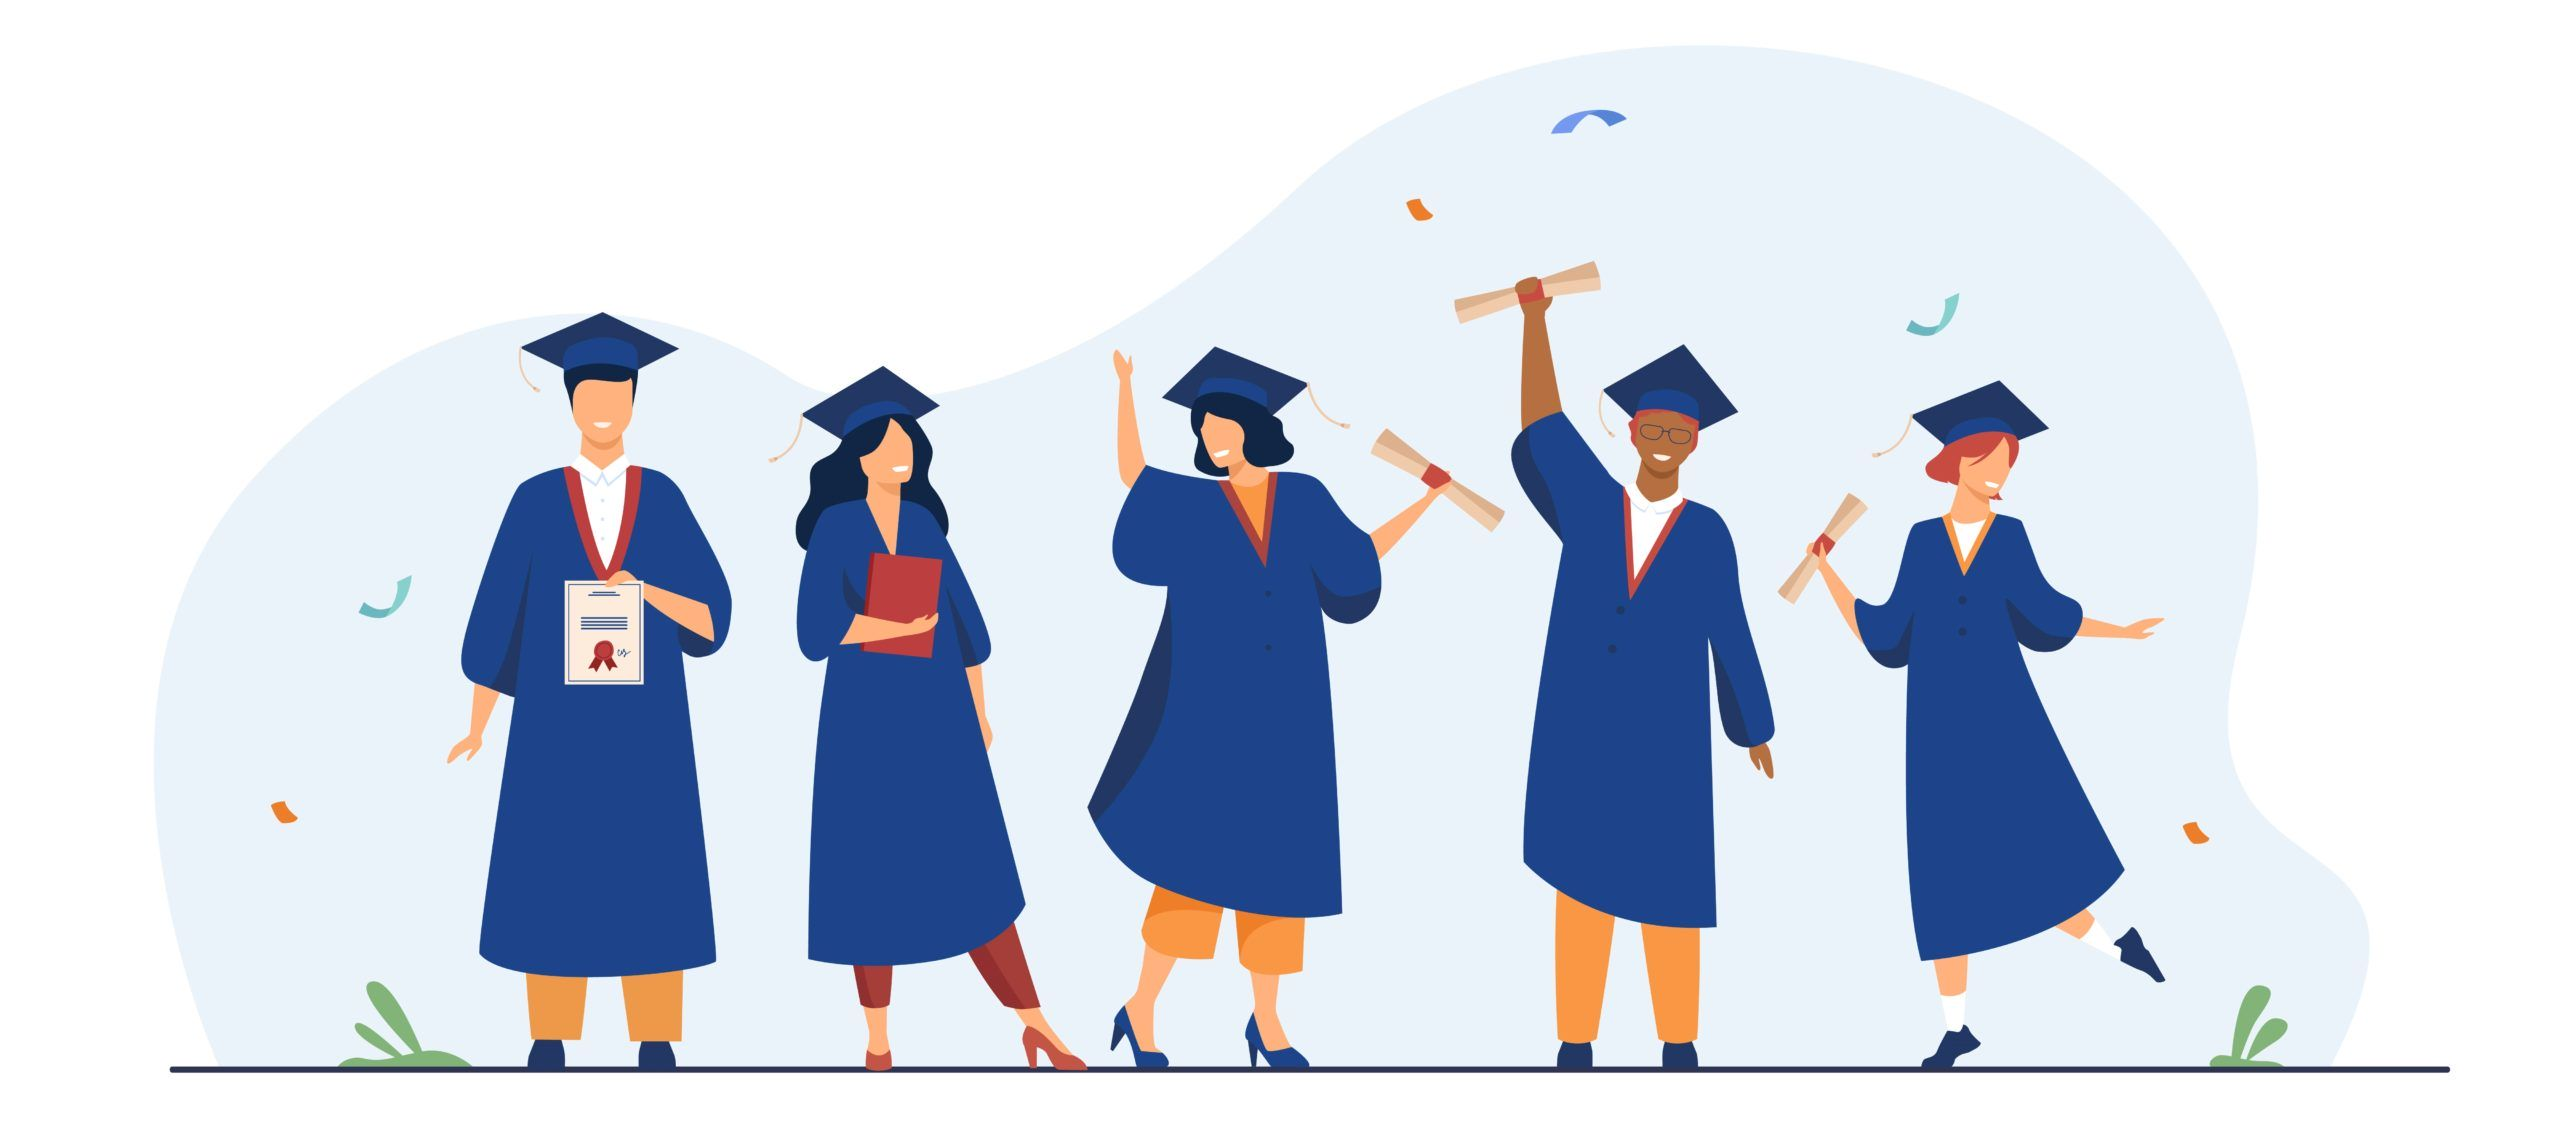 Happy diverse students celebrating graduation from school or colleges, holding diplomas and certificates. Flat vector illustration for education, university party, academic success concept